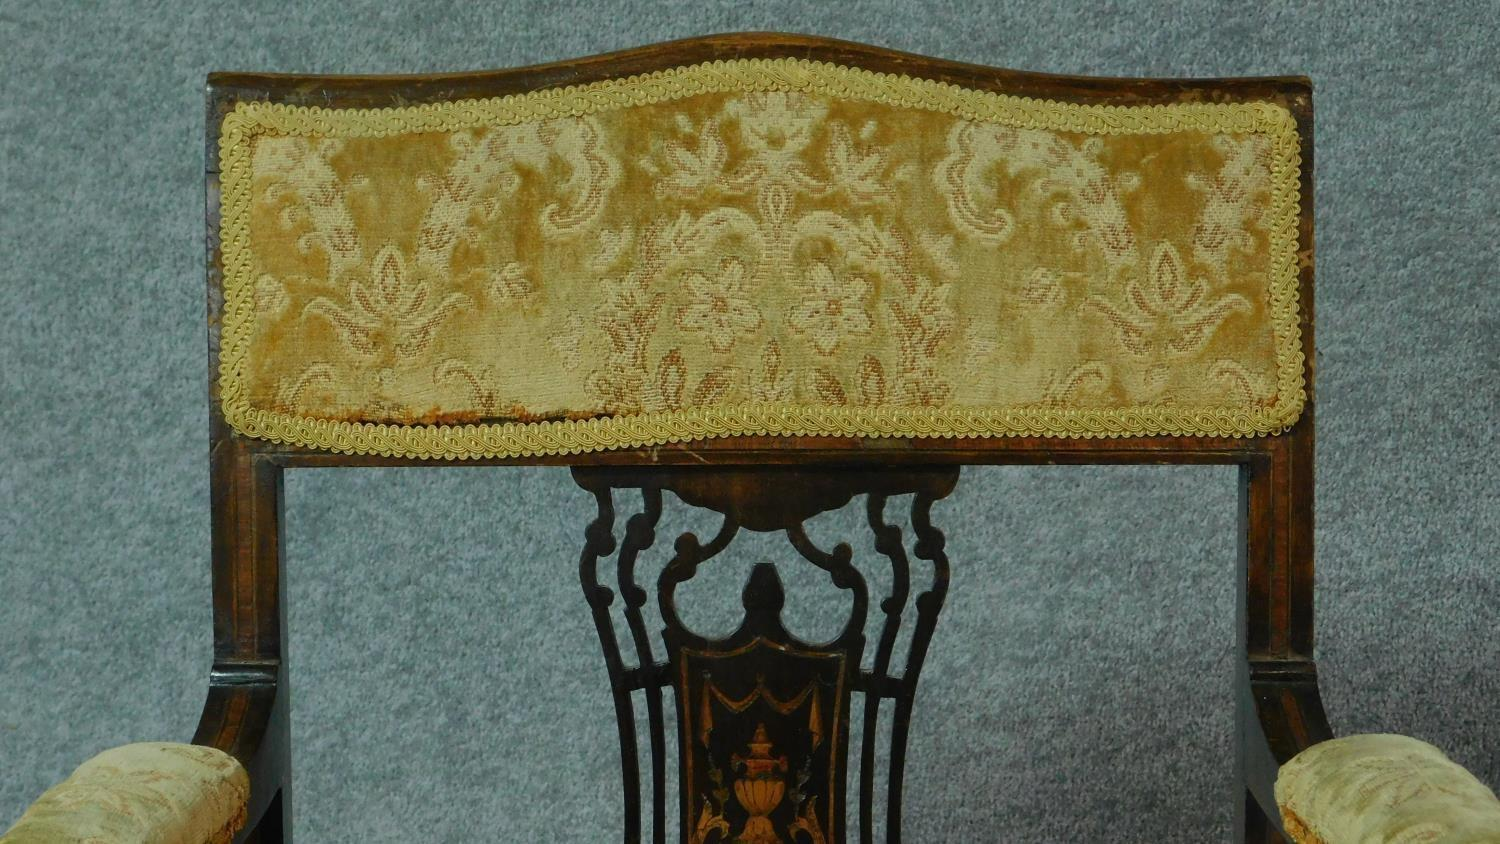 A late Victorian mahogany and satinwood inlaid armchair with urn design to the back, floral - Image 2 of 7